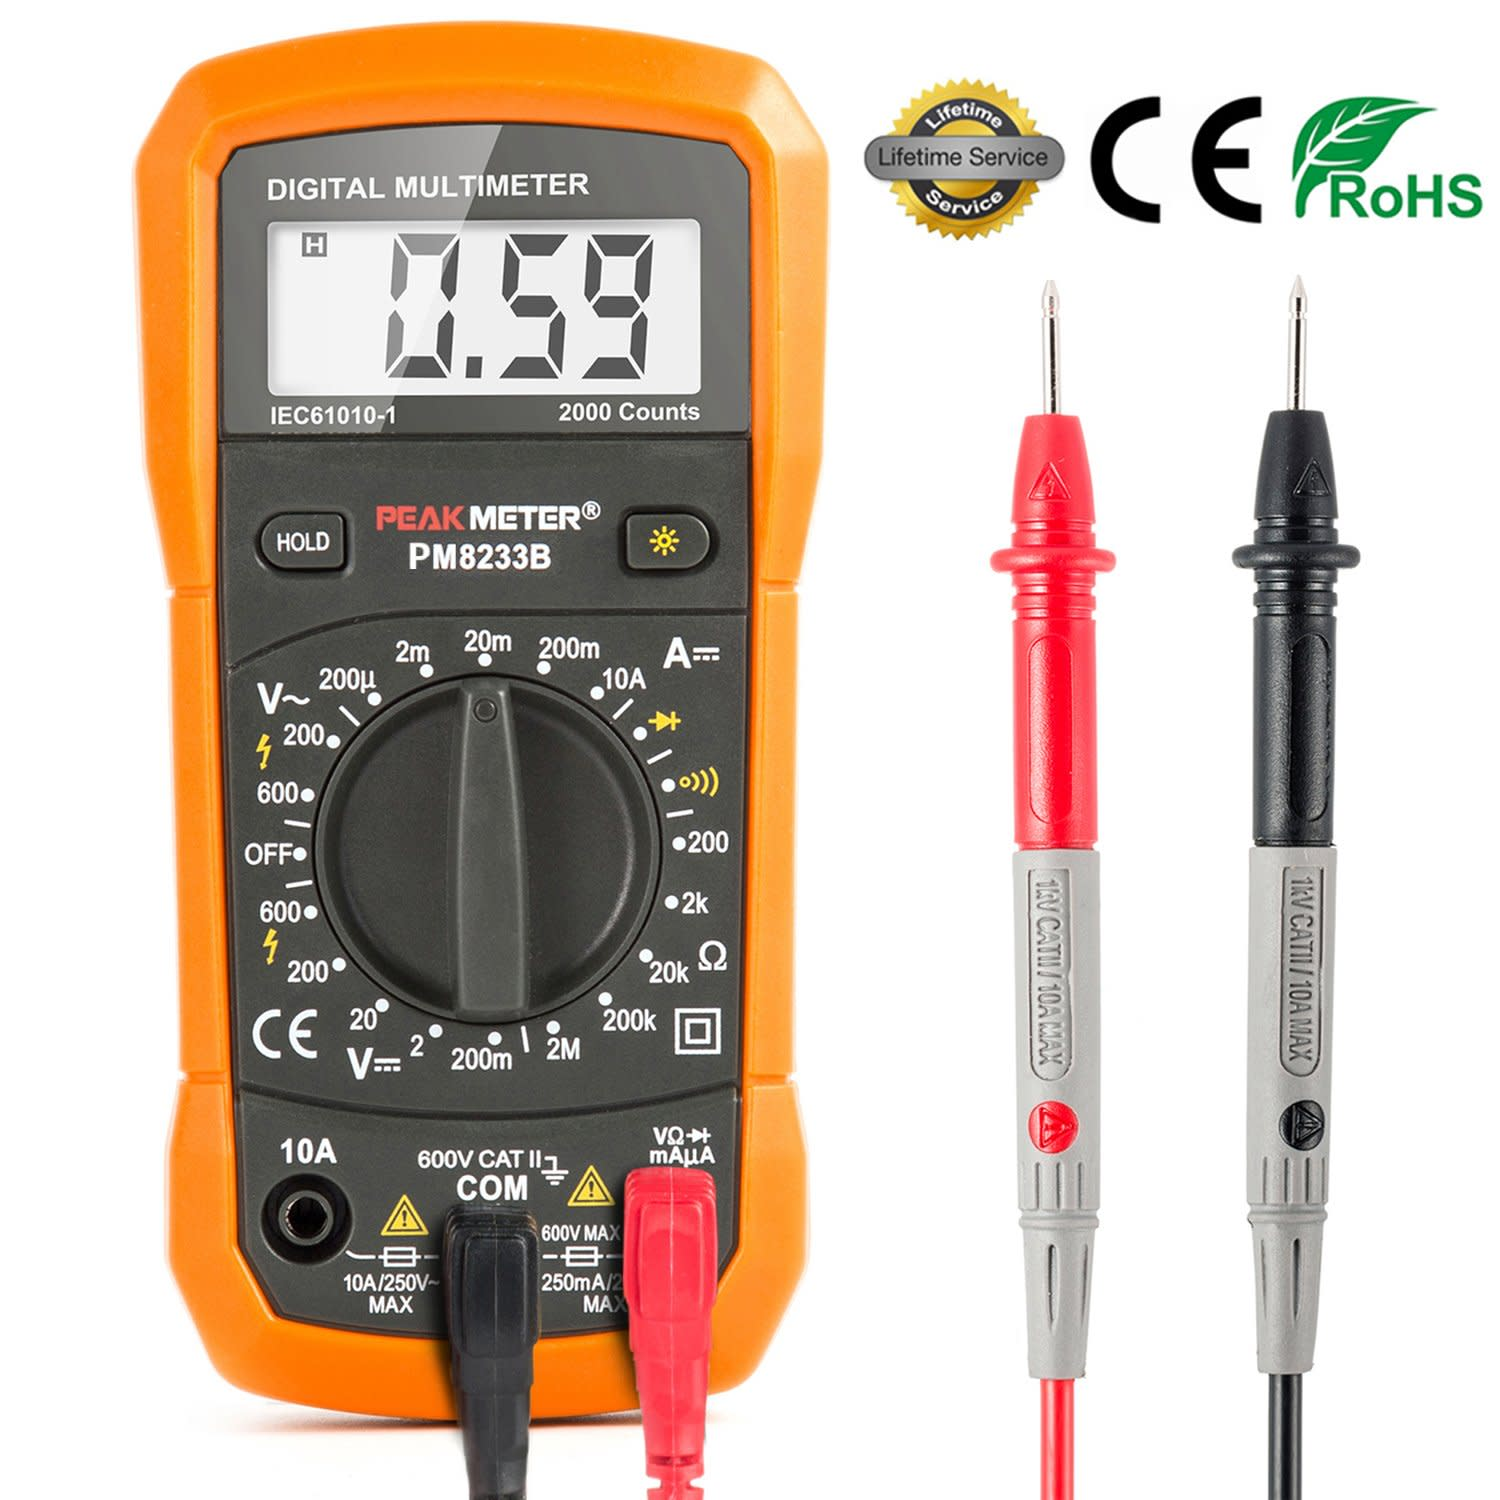 Simpson Electric Ac High Voltage Probe : Multimeter digital meter amp ohm voltmeter tester fluke